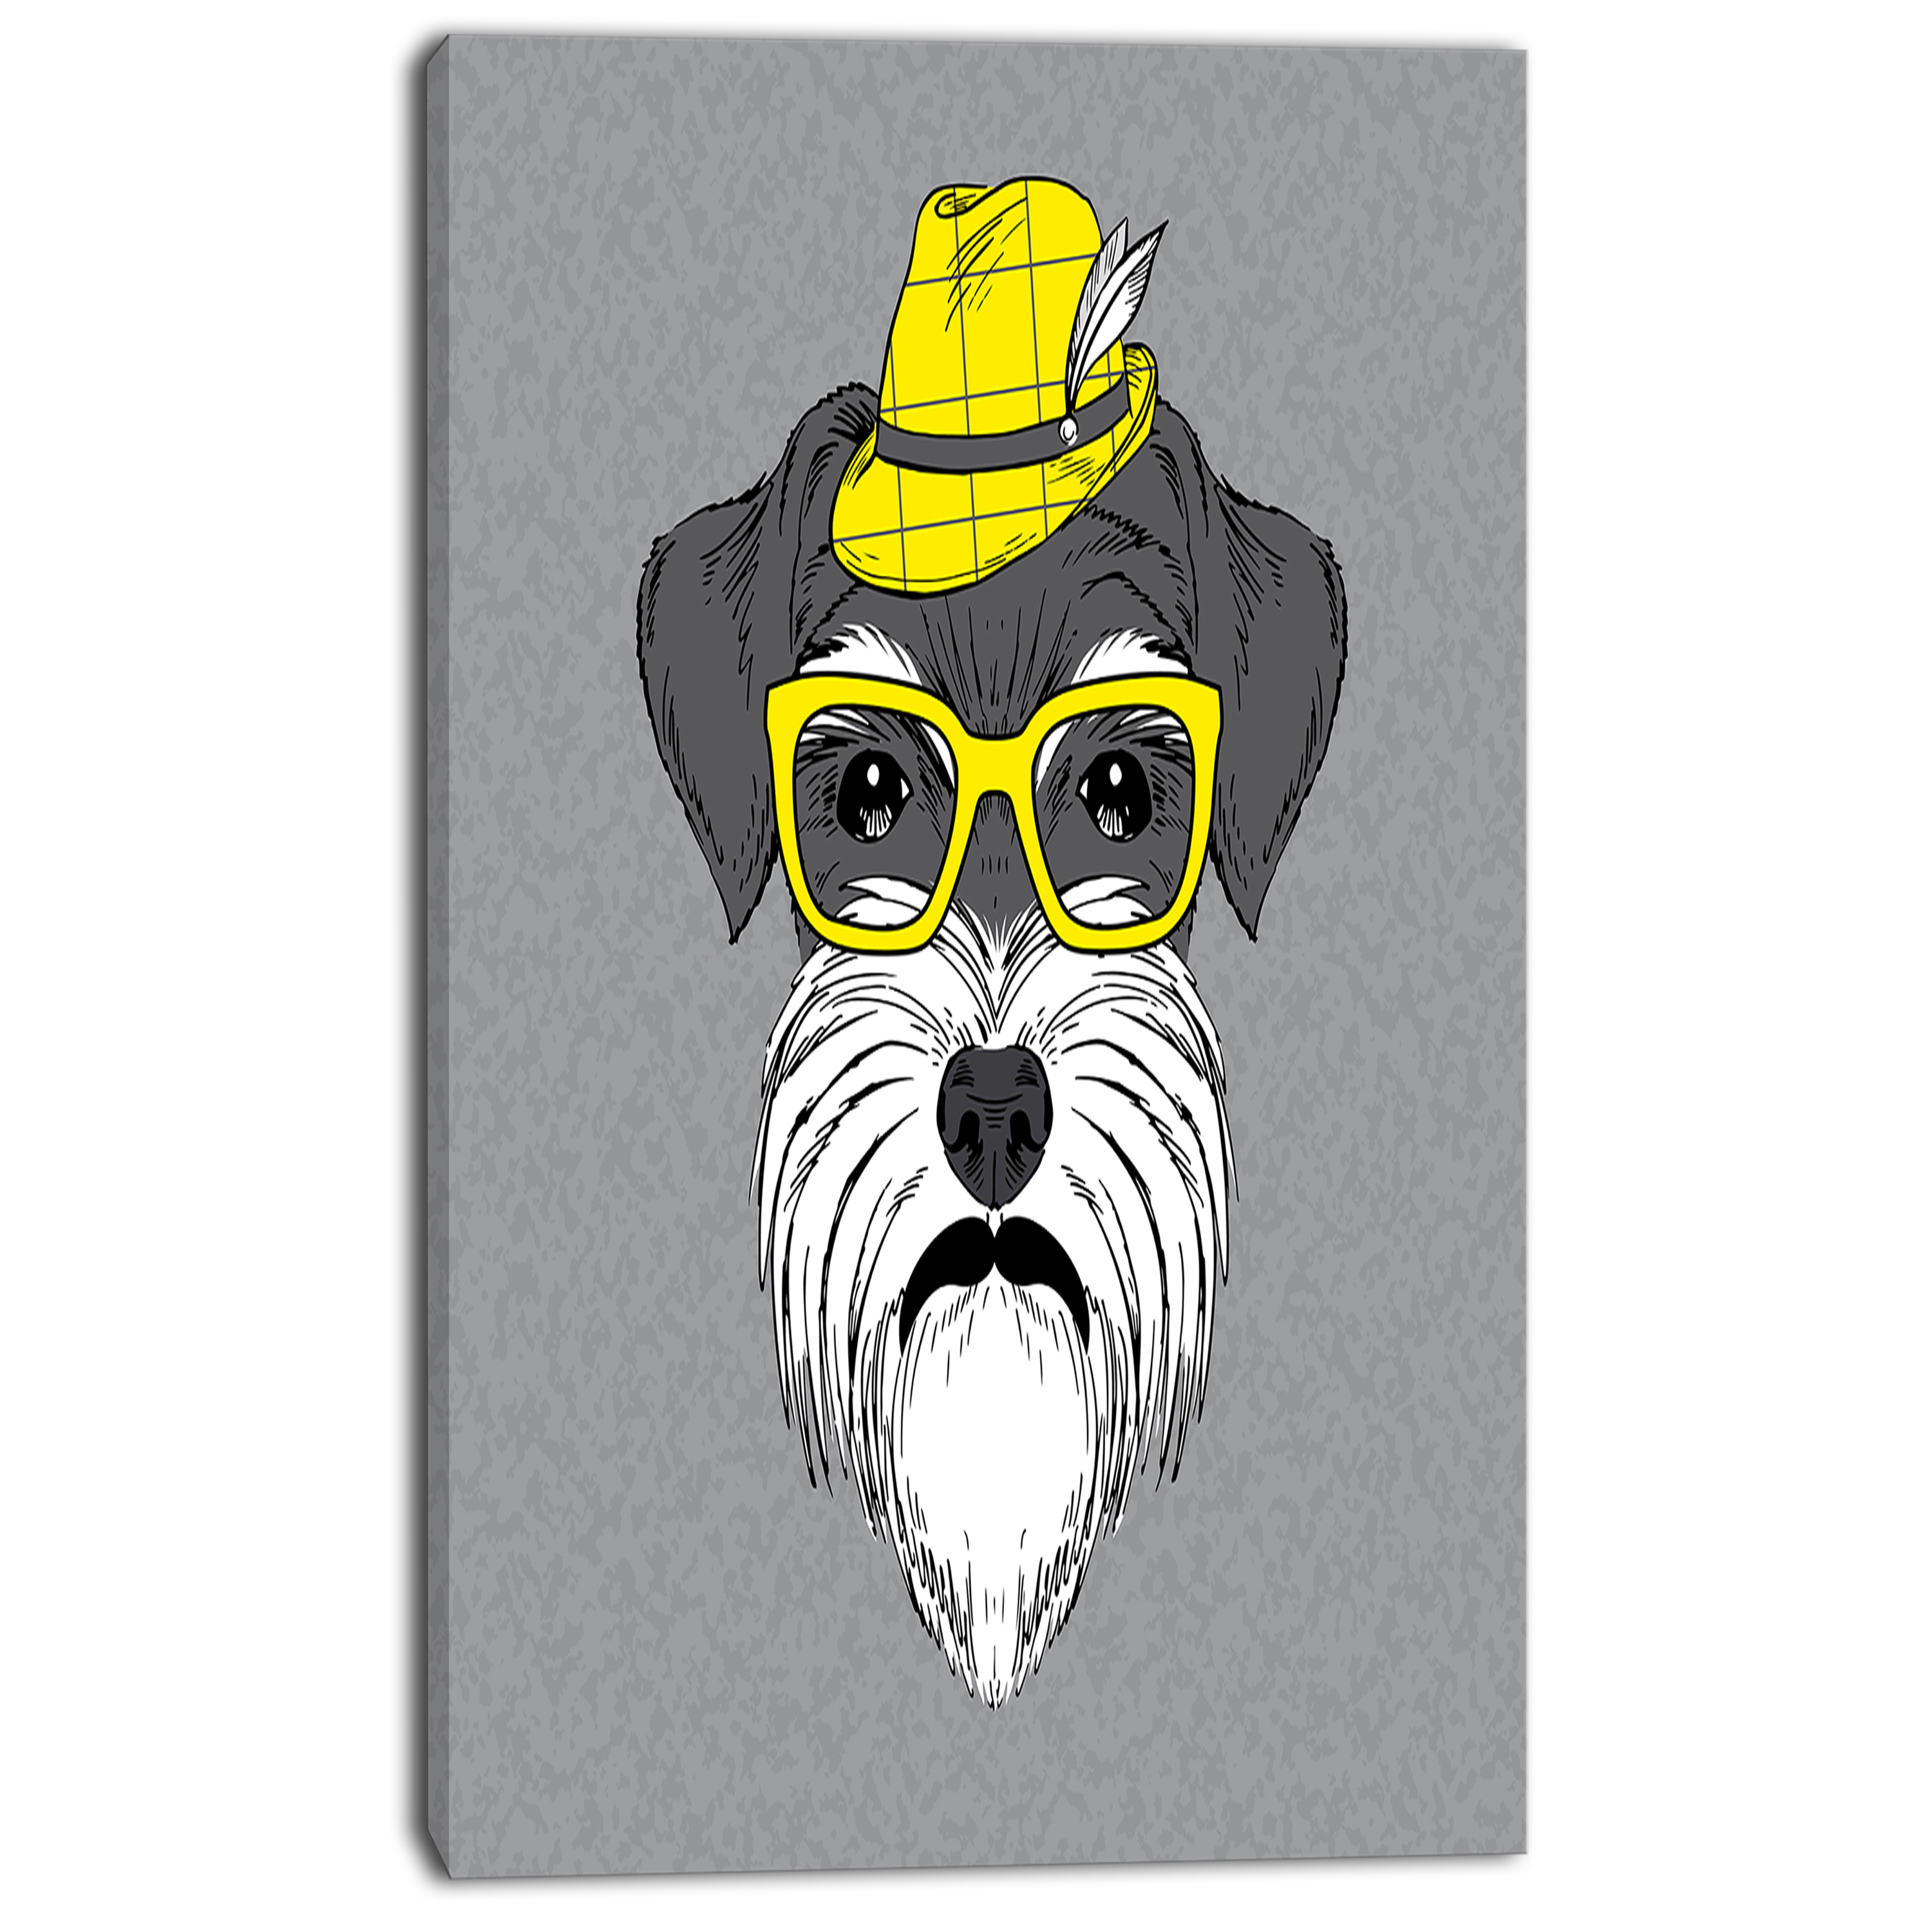 Schnauzer with Hat and Glasses - Contemporary Animal Art Canvas - image 1 of 3